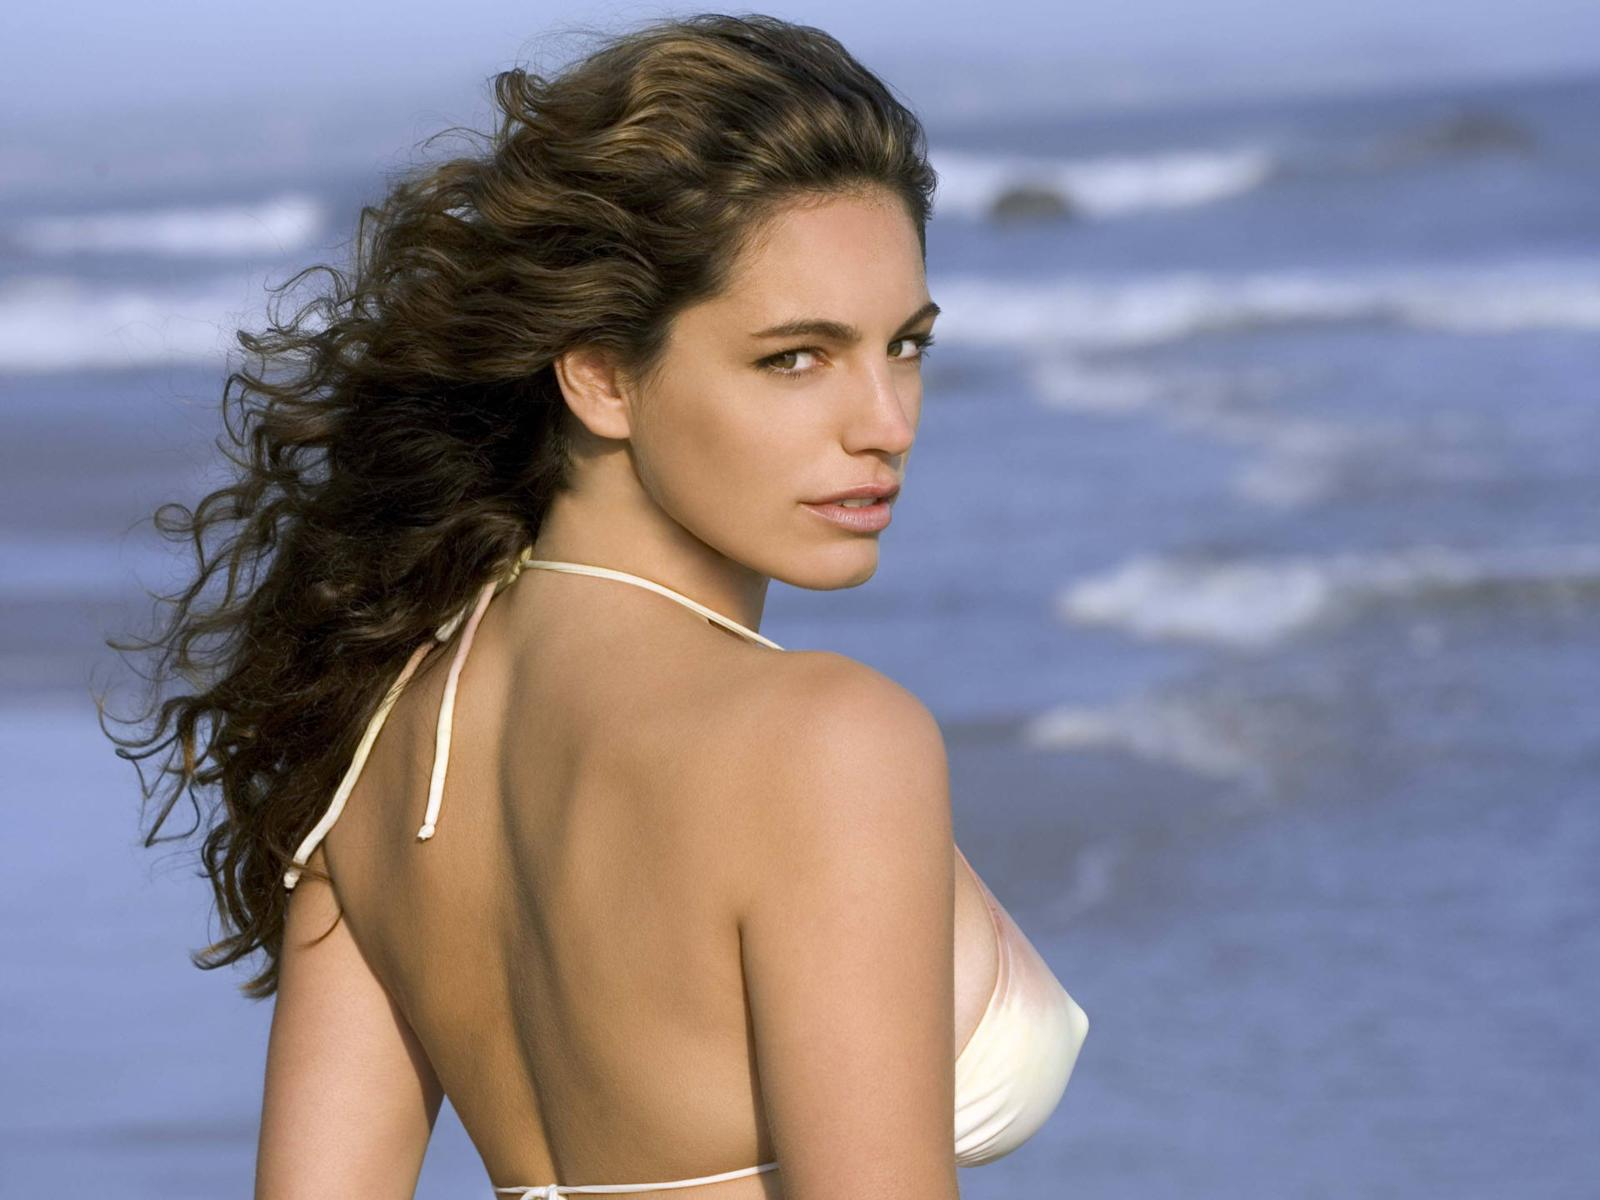 http://4.bp.blogspot.com/-PuXUiFTGfsE/TsPRUPXdTlI/AAAAAAAAF3A/C9Y8LABVMMY/s1600/kelly_brook_back_desktop_wallpaper_49034+%25281%2529.jpg